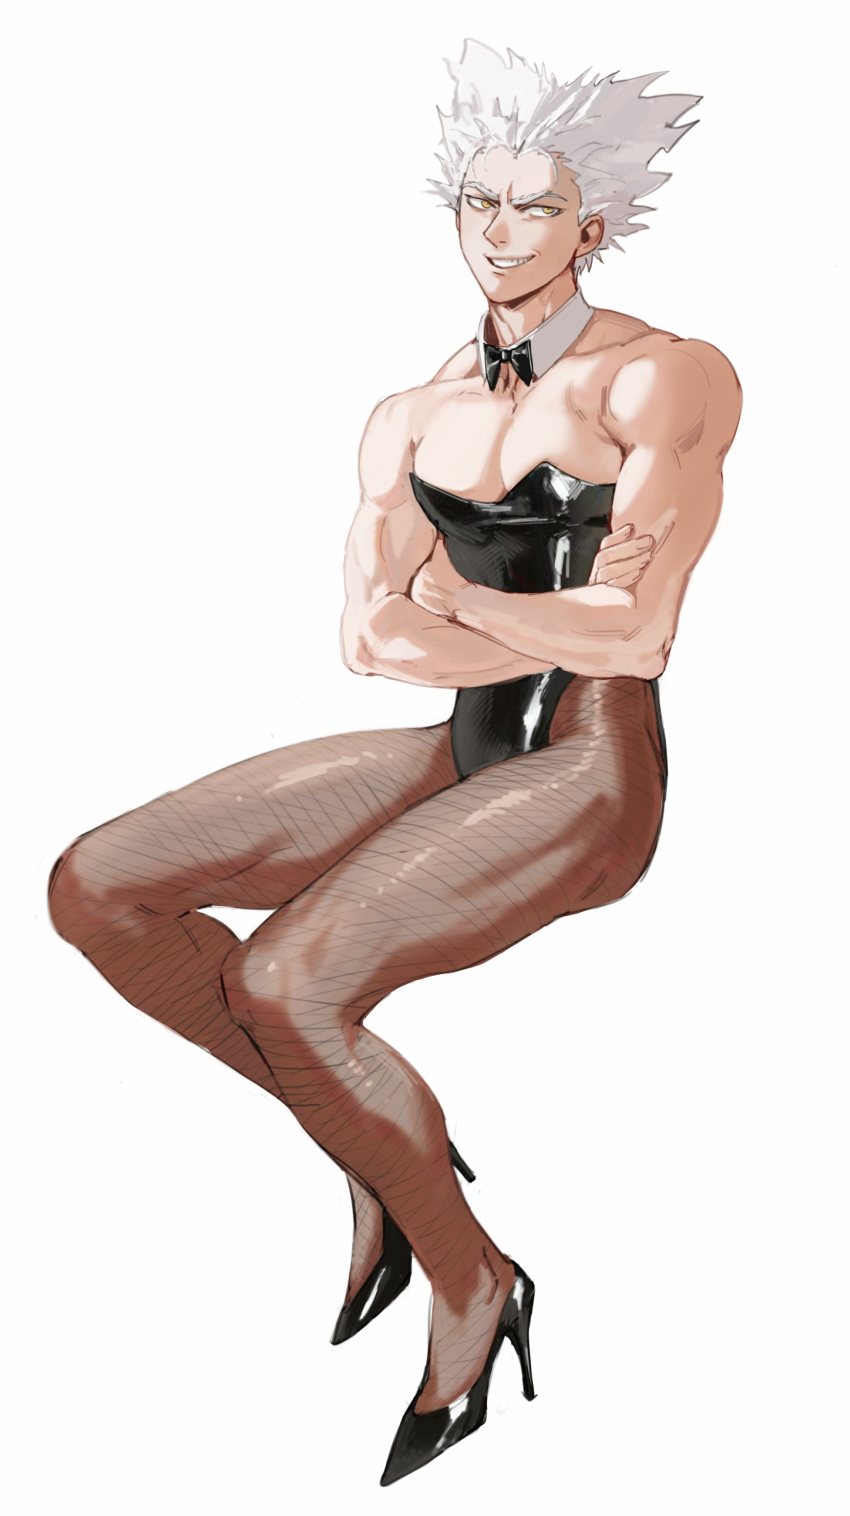 1boy absurdres alternate_costume bare_arms bare_shoulders black_footwear black_leotard bow bowtie collarbone crossdressinging crossed_arms detached_collar dudlesnoodles fishnet_legwear fishnets full_body garou_(one-punch_man) grey_hair grin high_heels highres invisible_chair leotard looking_at_viewer male_focus male_playboy_bunny muscular muscular_male one-punch_man pectorals pointy_hair simple_background sitting smile solo strapless strapless_leotard symbol_commentary tan tanlines teeth white_background yellow_eyes